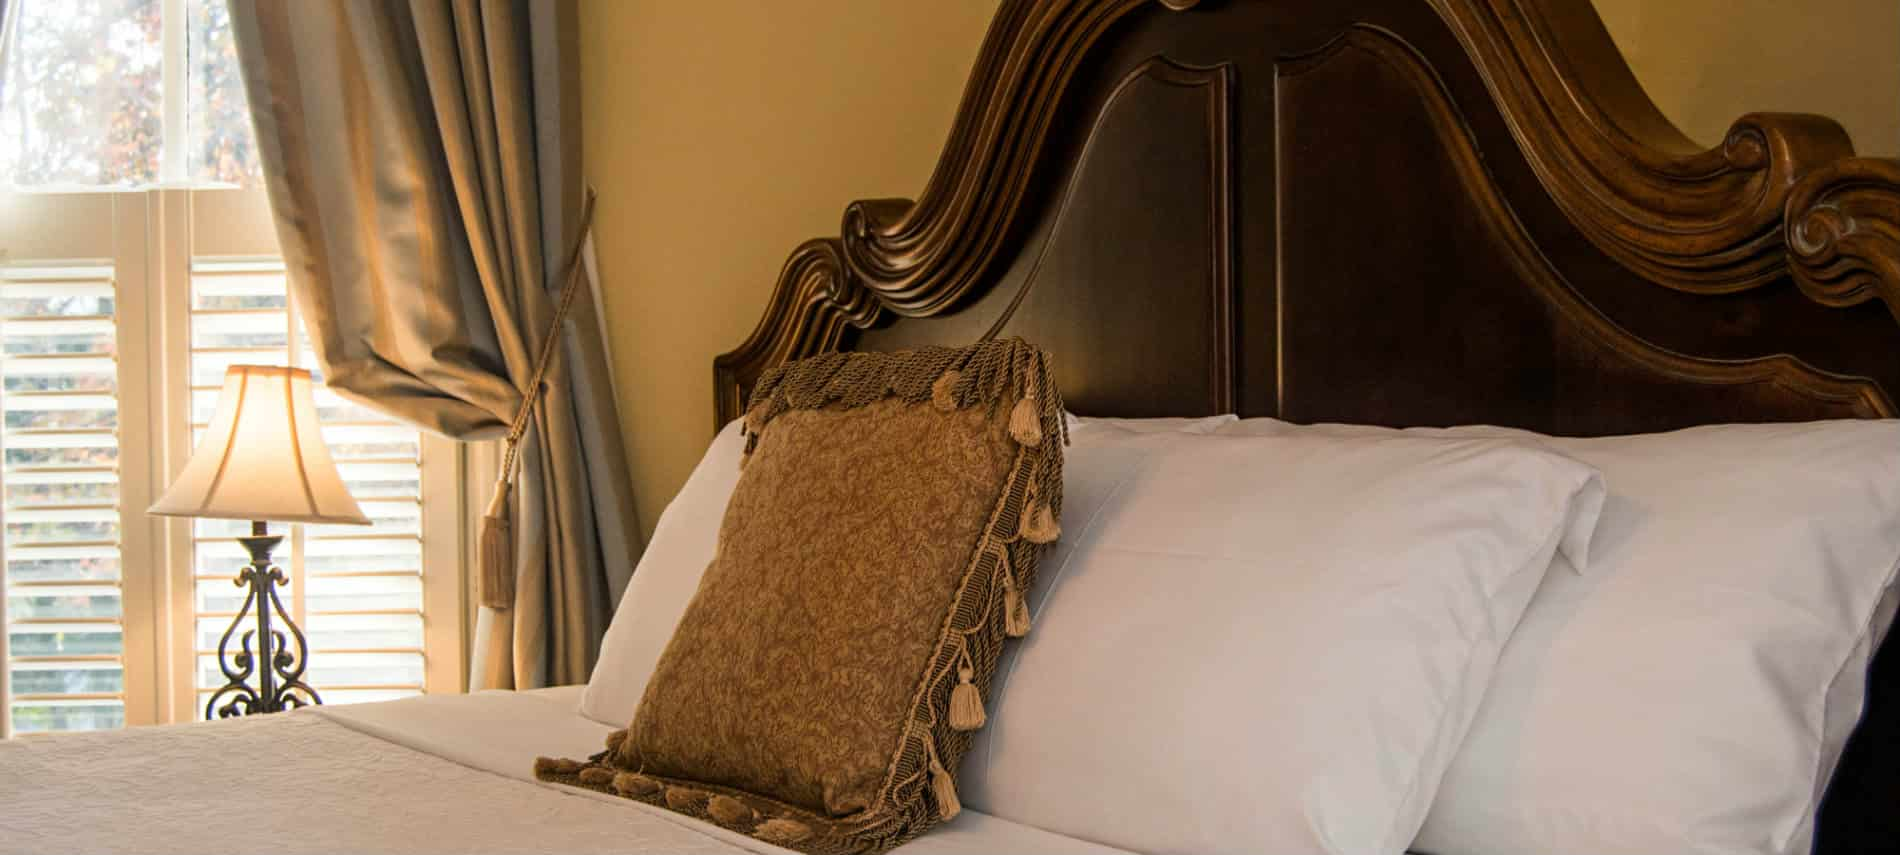 Soft yellow painted room with grand dark wood ornate headboard, white linens, gold and bronze throw pillow in front of curtained window